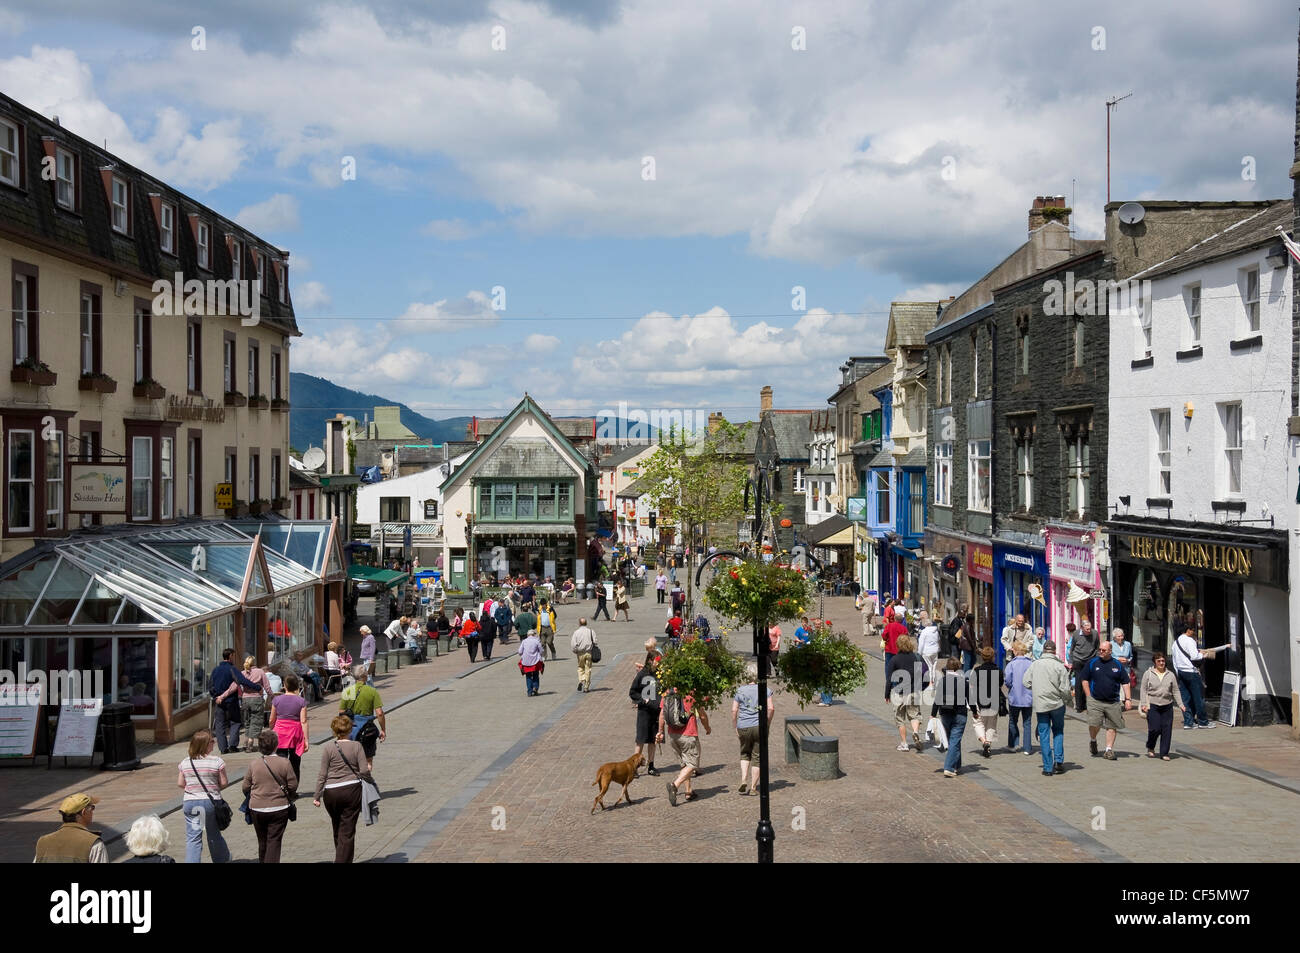 Walkers and shoppers in Market Place, Keswick, which is now renovated into a pedestrian priority area. - Stock Image